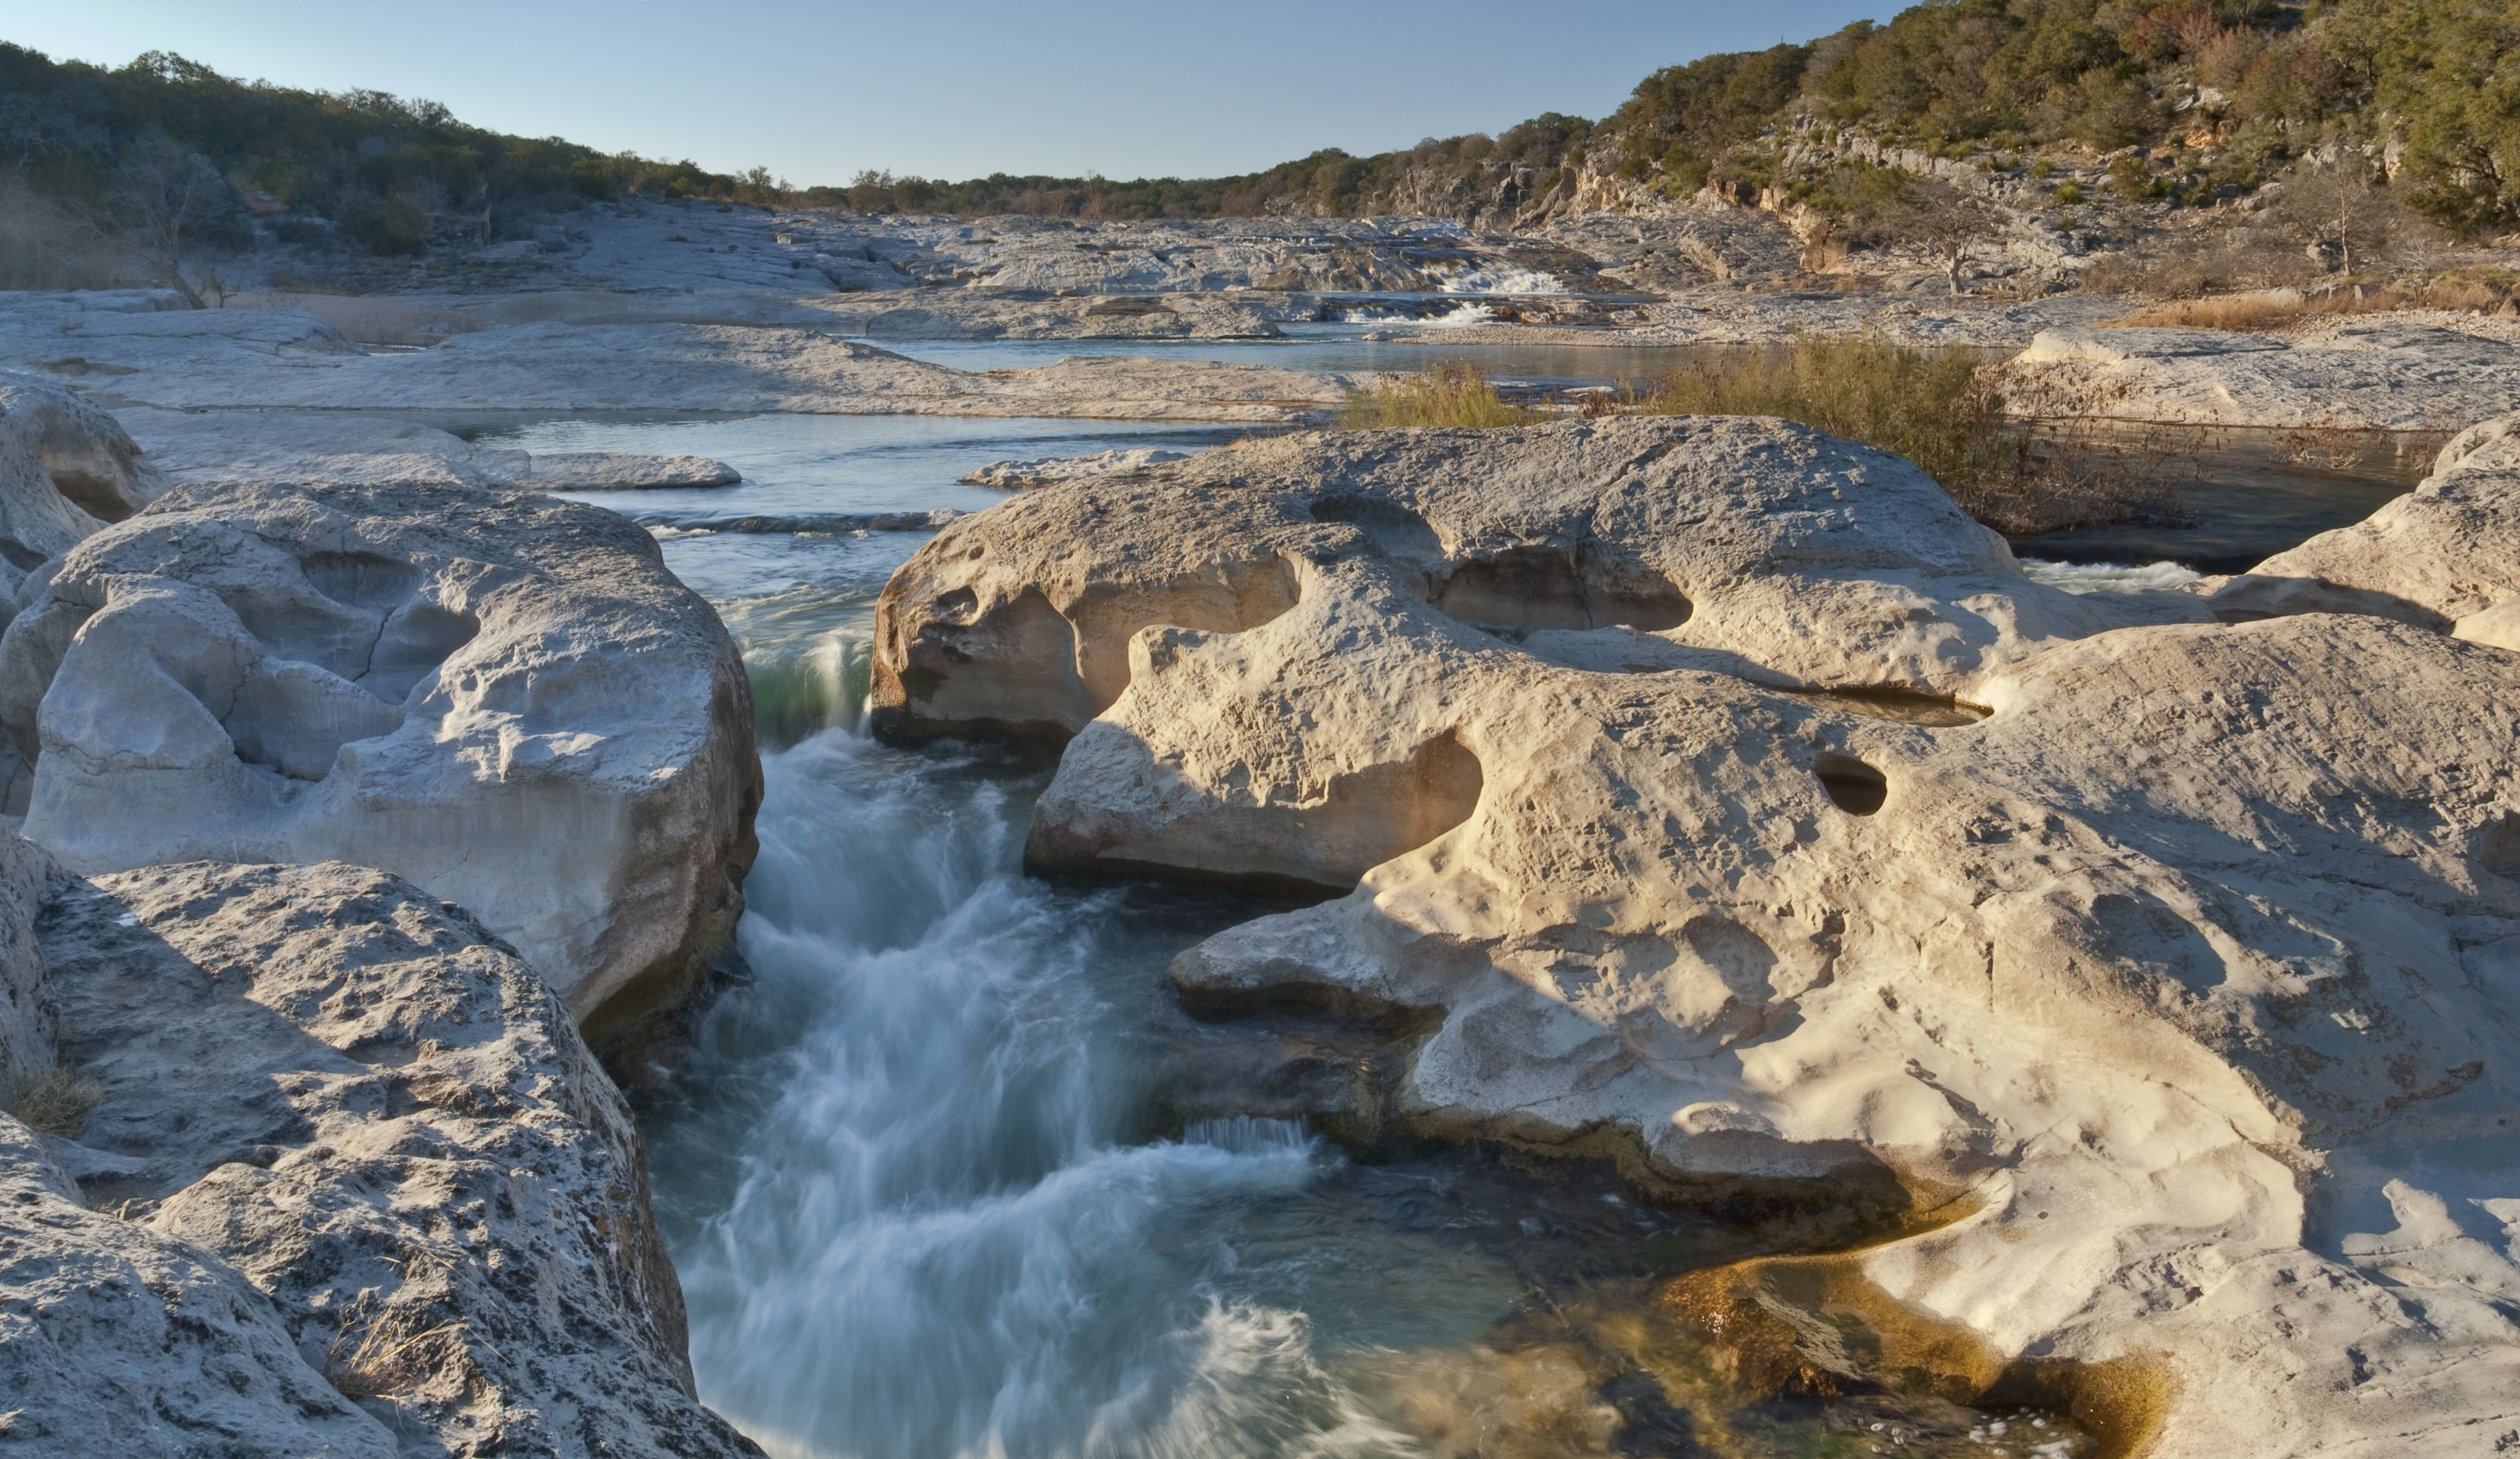 Channel of Pedernales River at sunset, Pedernales Falls State Park, Hill Country.